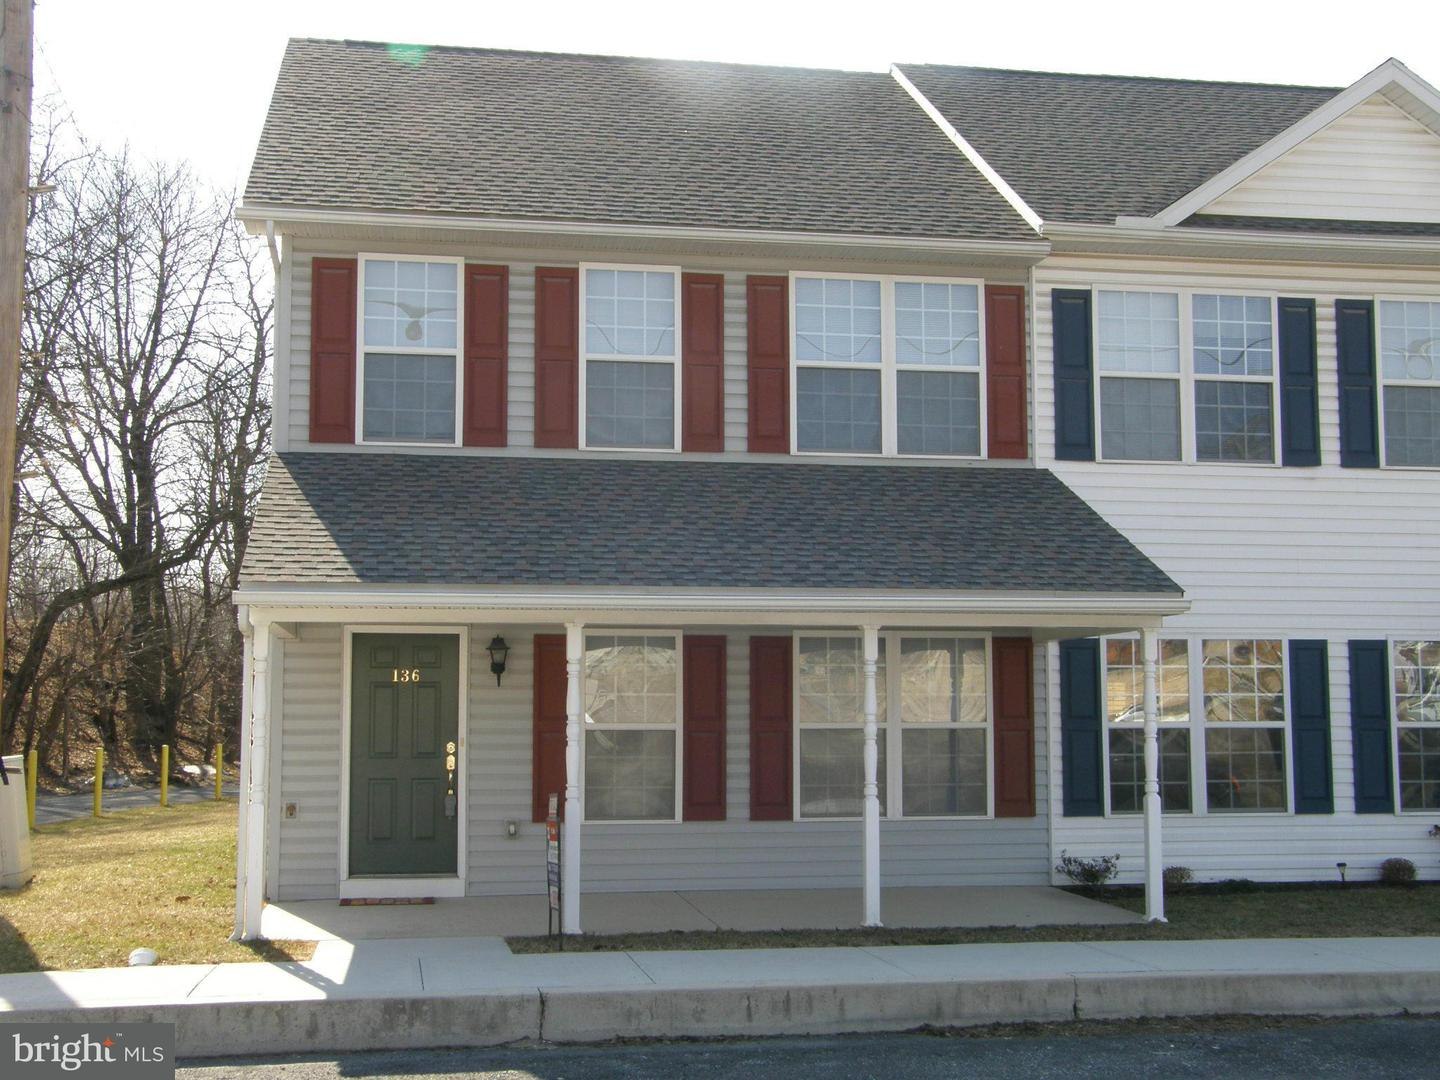 Other Residential for Rent at 136 Earl St S Shippensburg, Pennsylvania 17257 United States